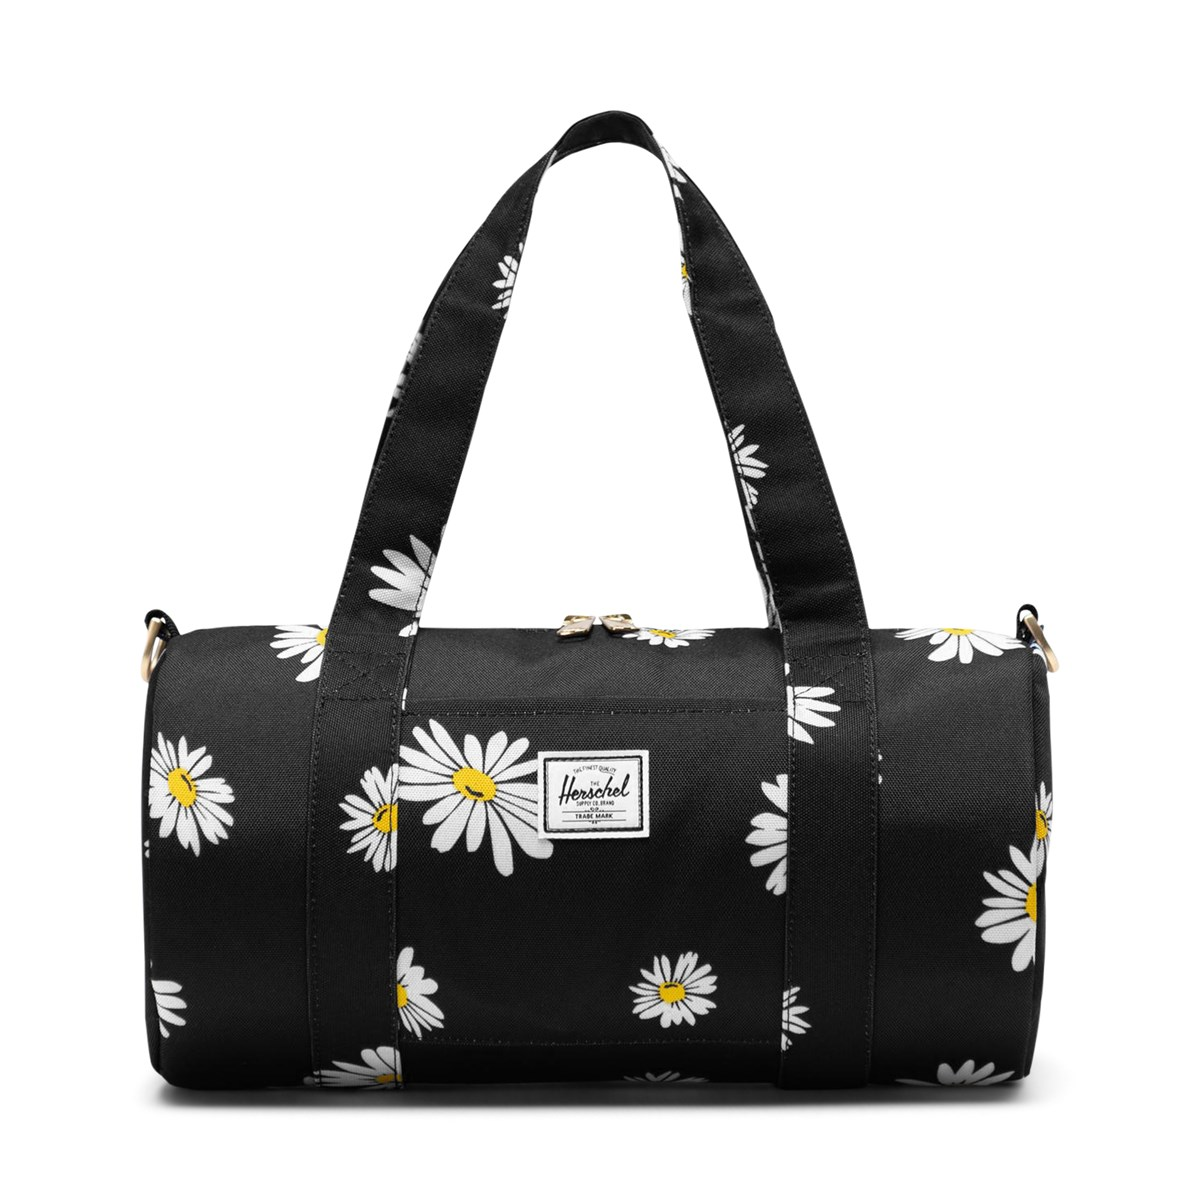 Daisy Sutton Mini Duffle Bag in Black